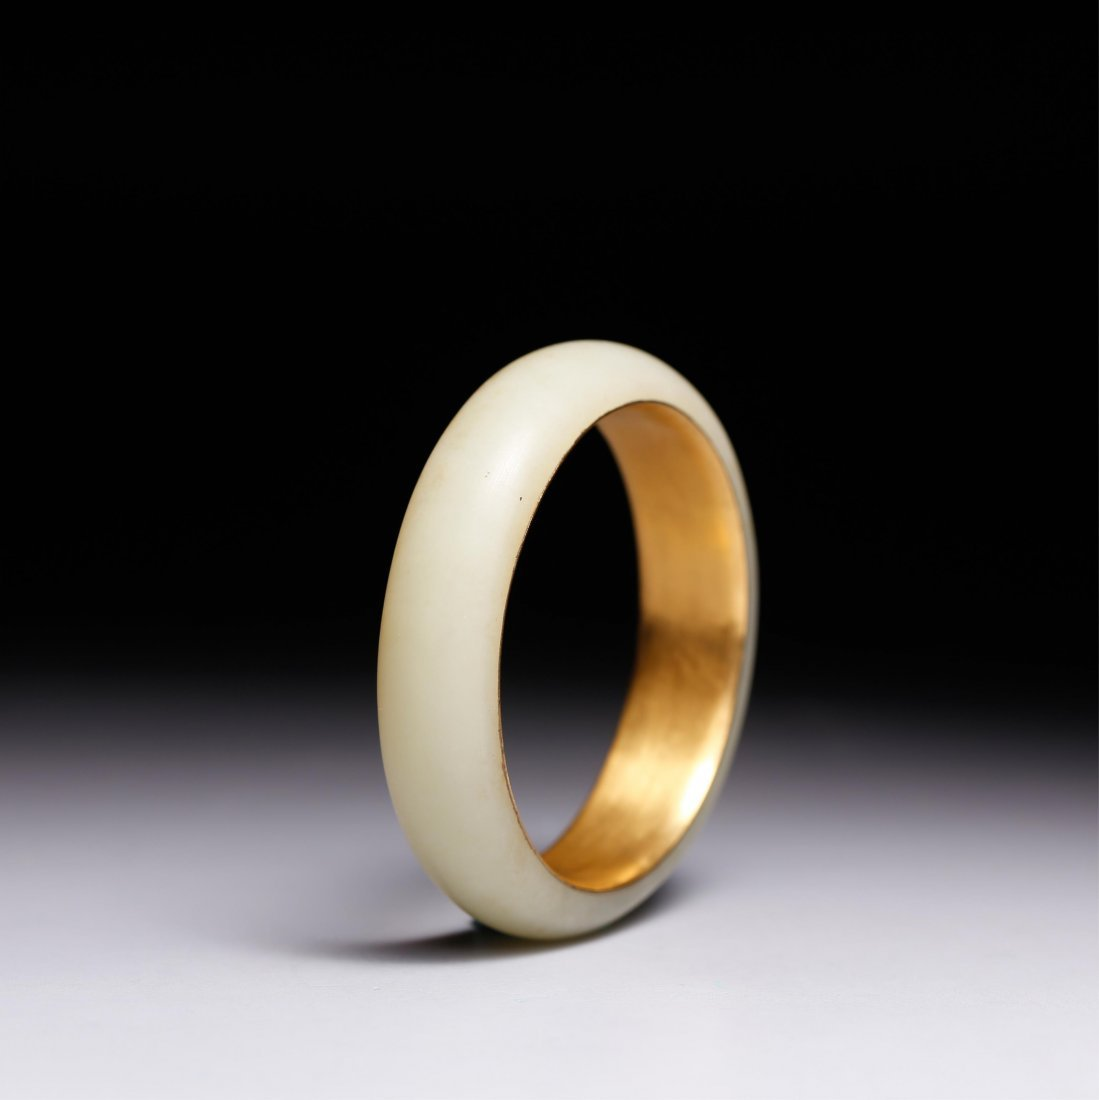 CHINESE GOLD AND YELLOW JADE BANGLE